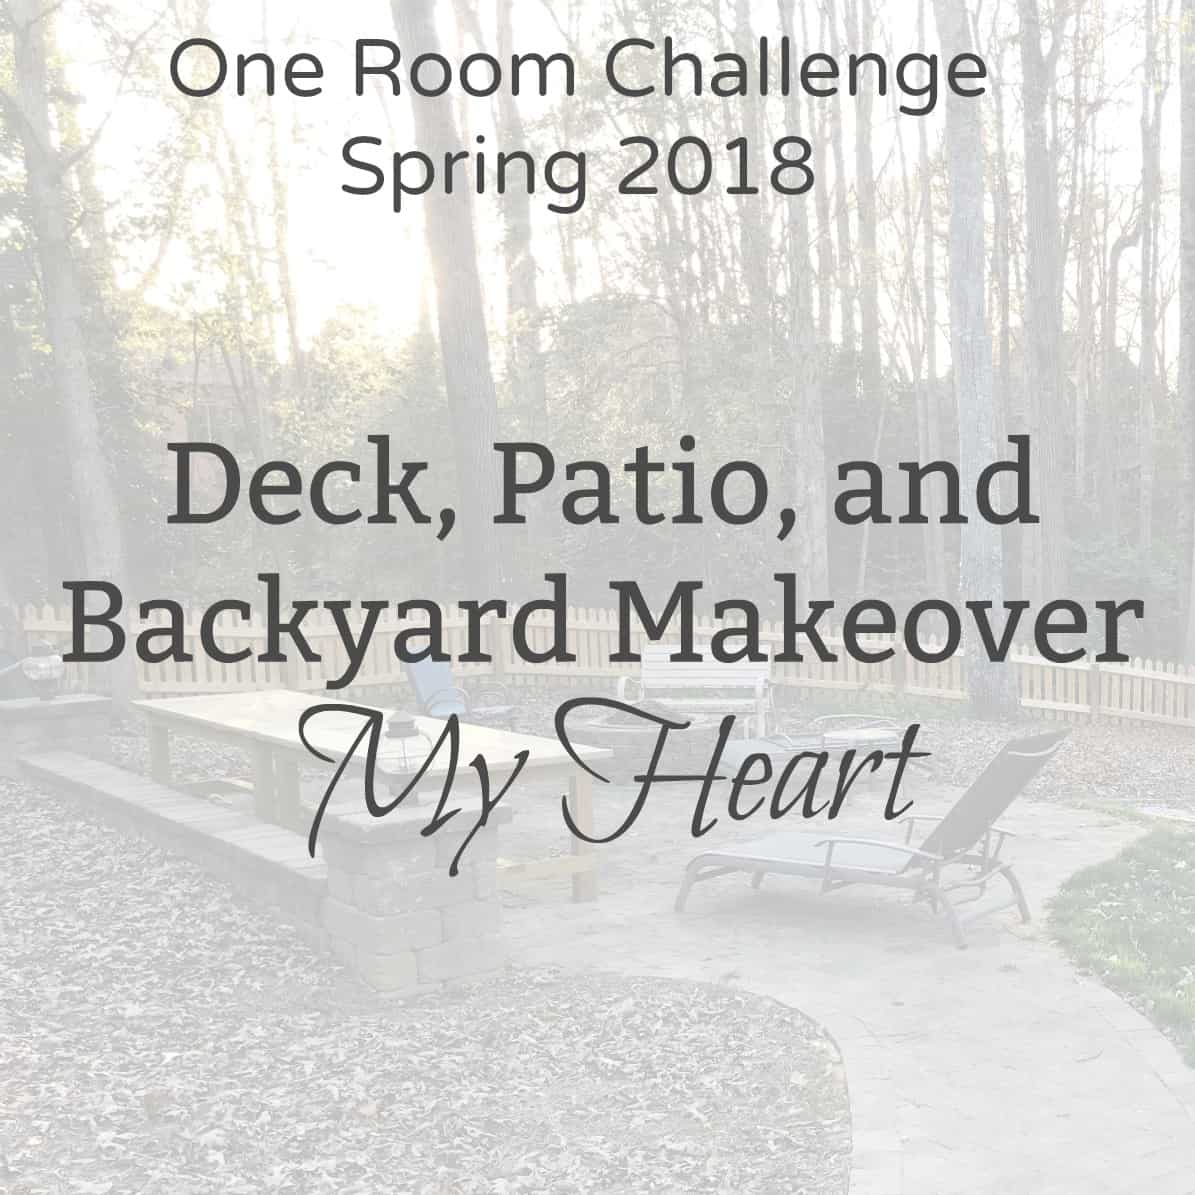 One Room Challenge Spring 2018 Week 5